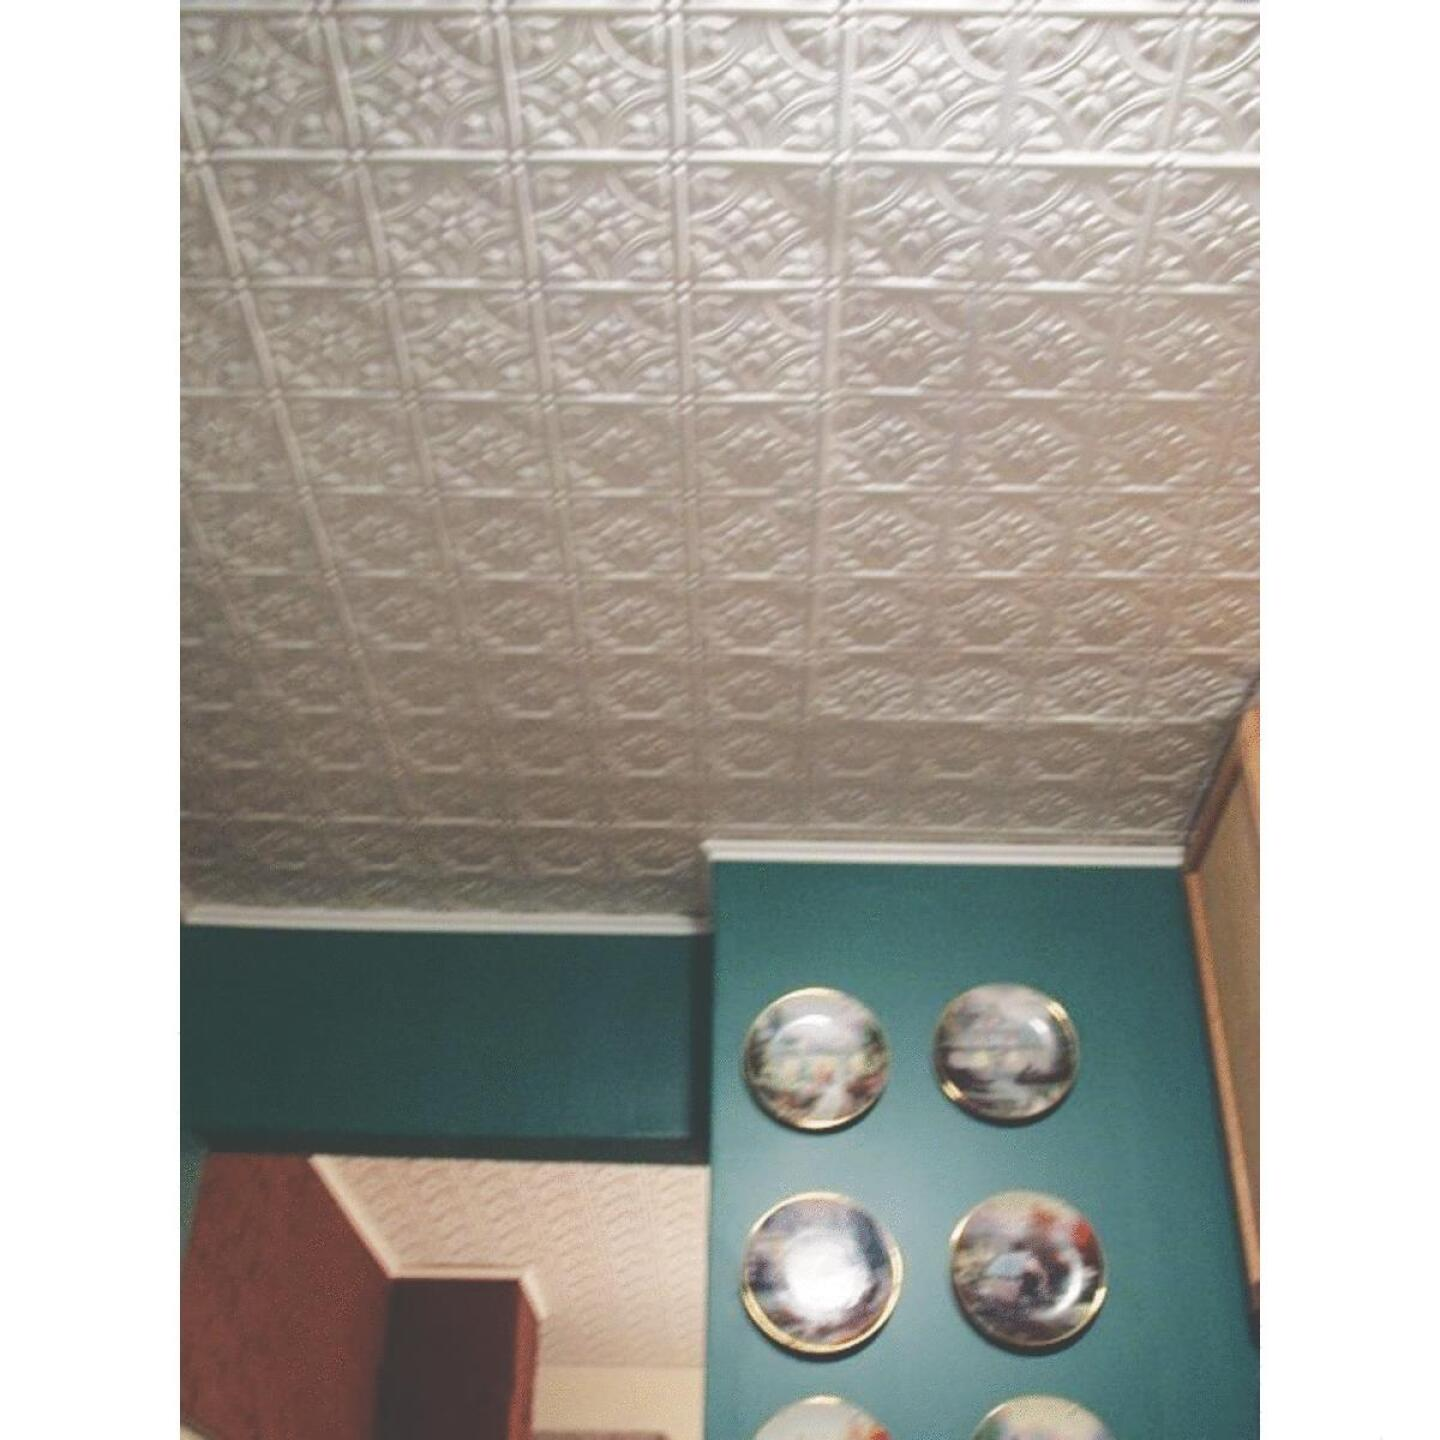 Dimensions 2 Ft. x 4 Ft. White 12 In. Square Pattern Tin Look Nonsuspended Ceiling Tile & Backsplash Image 2